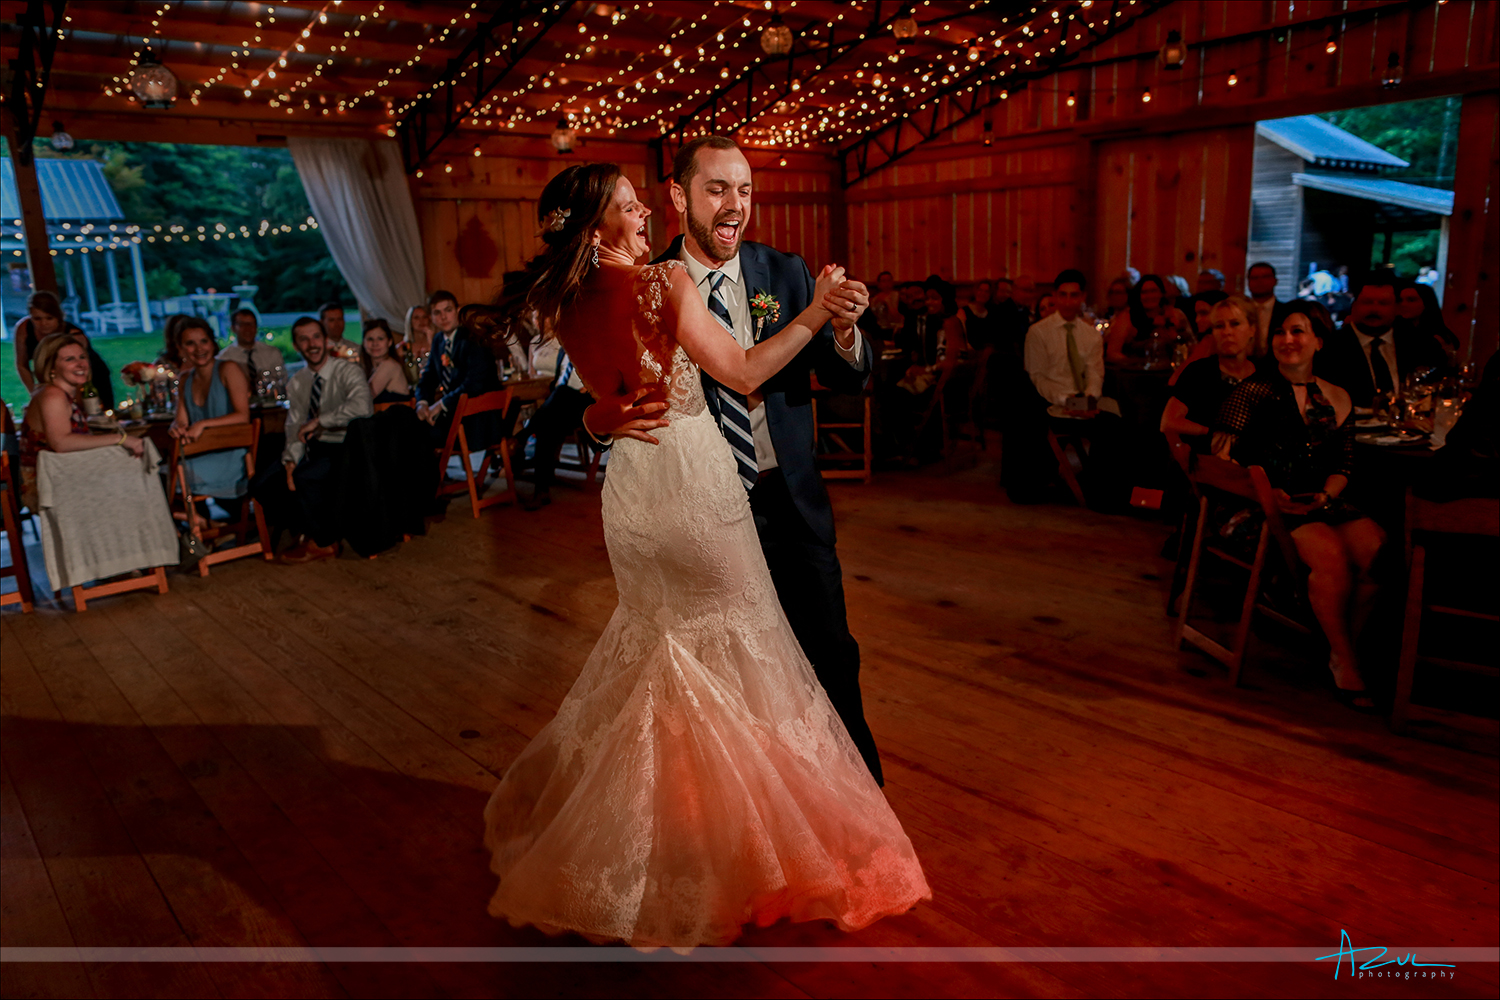 Happy photograph of the wedding bride and groom and their first dance in the barn in Chapel Hill